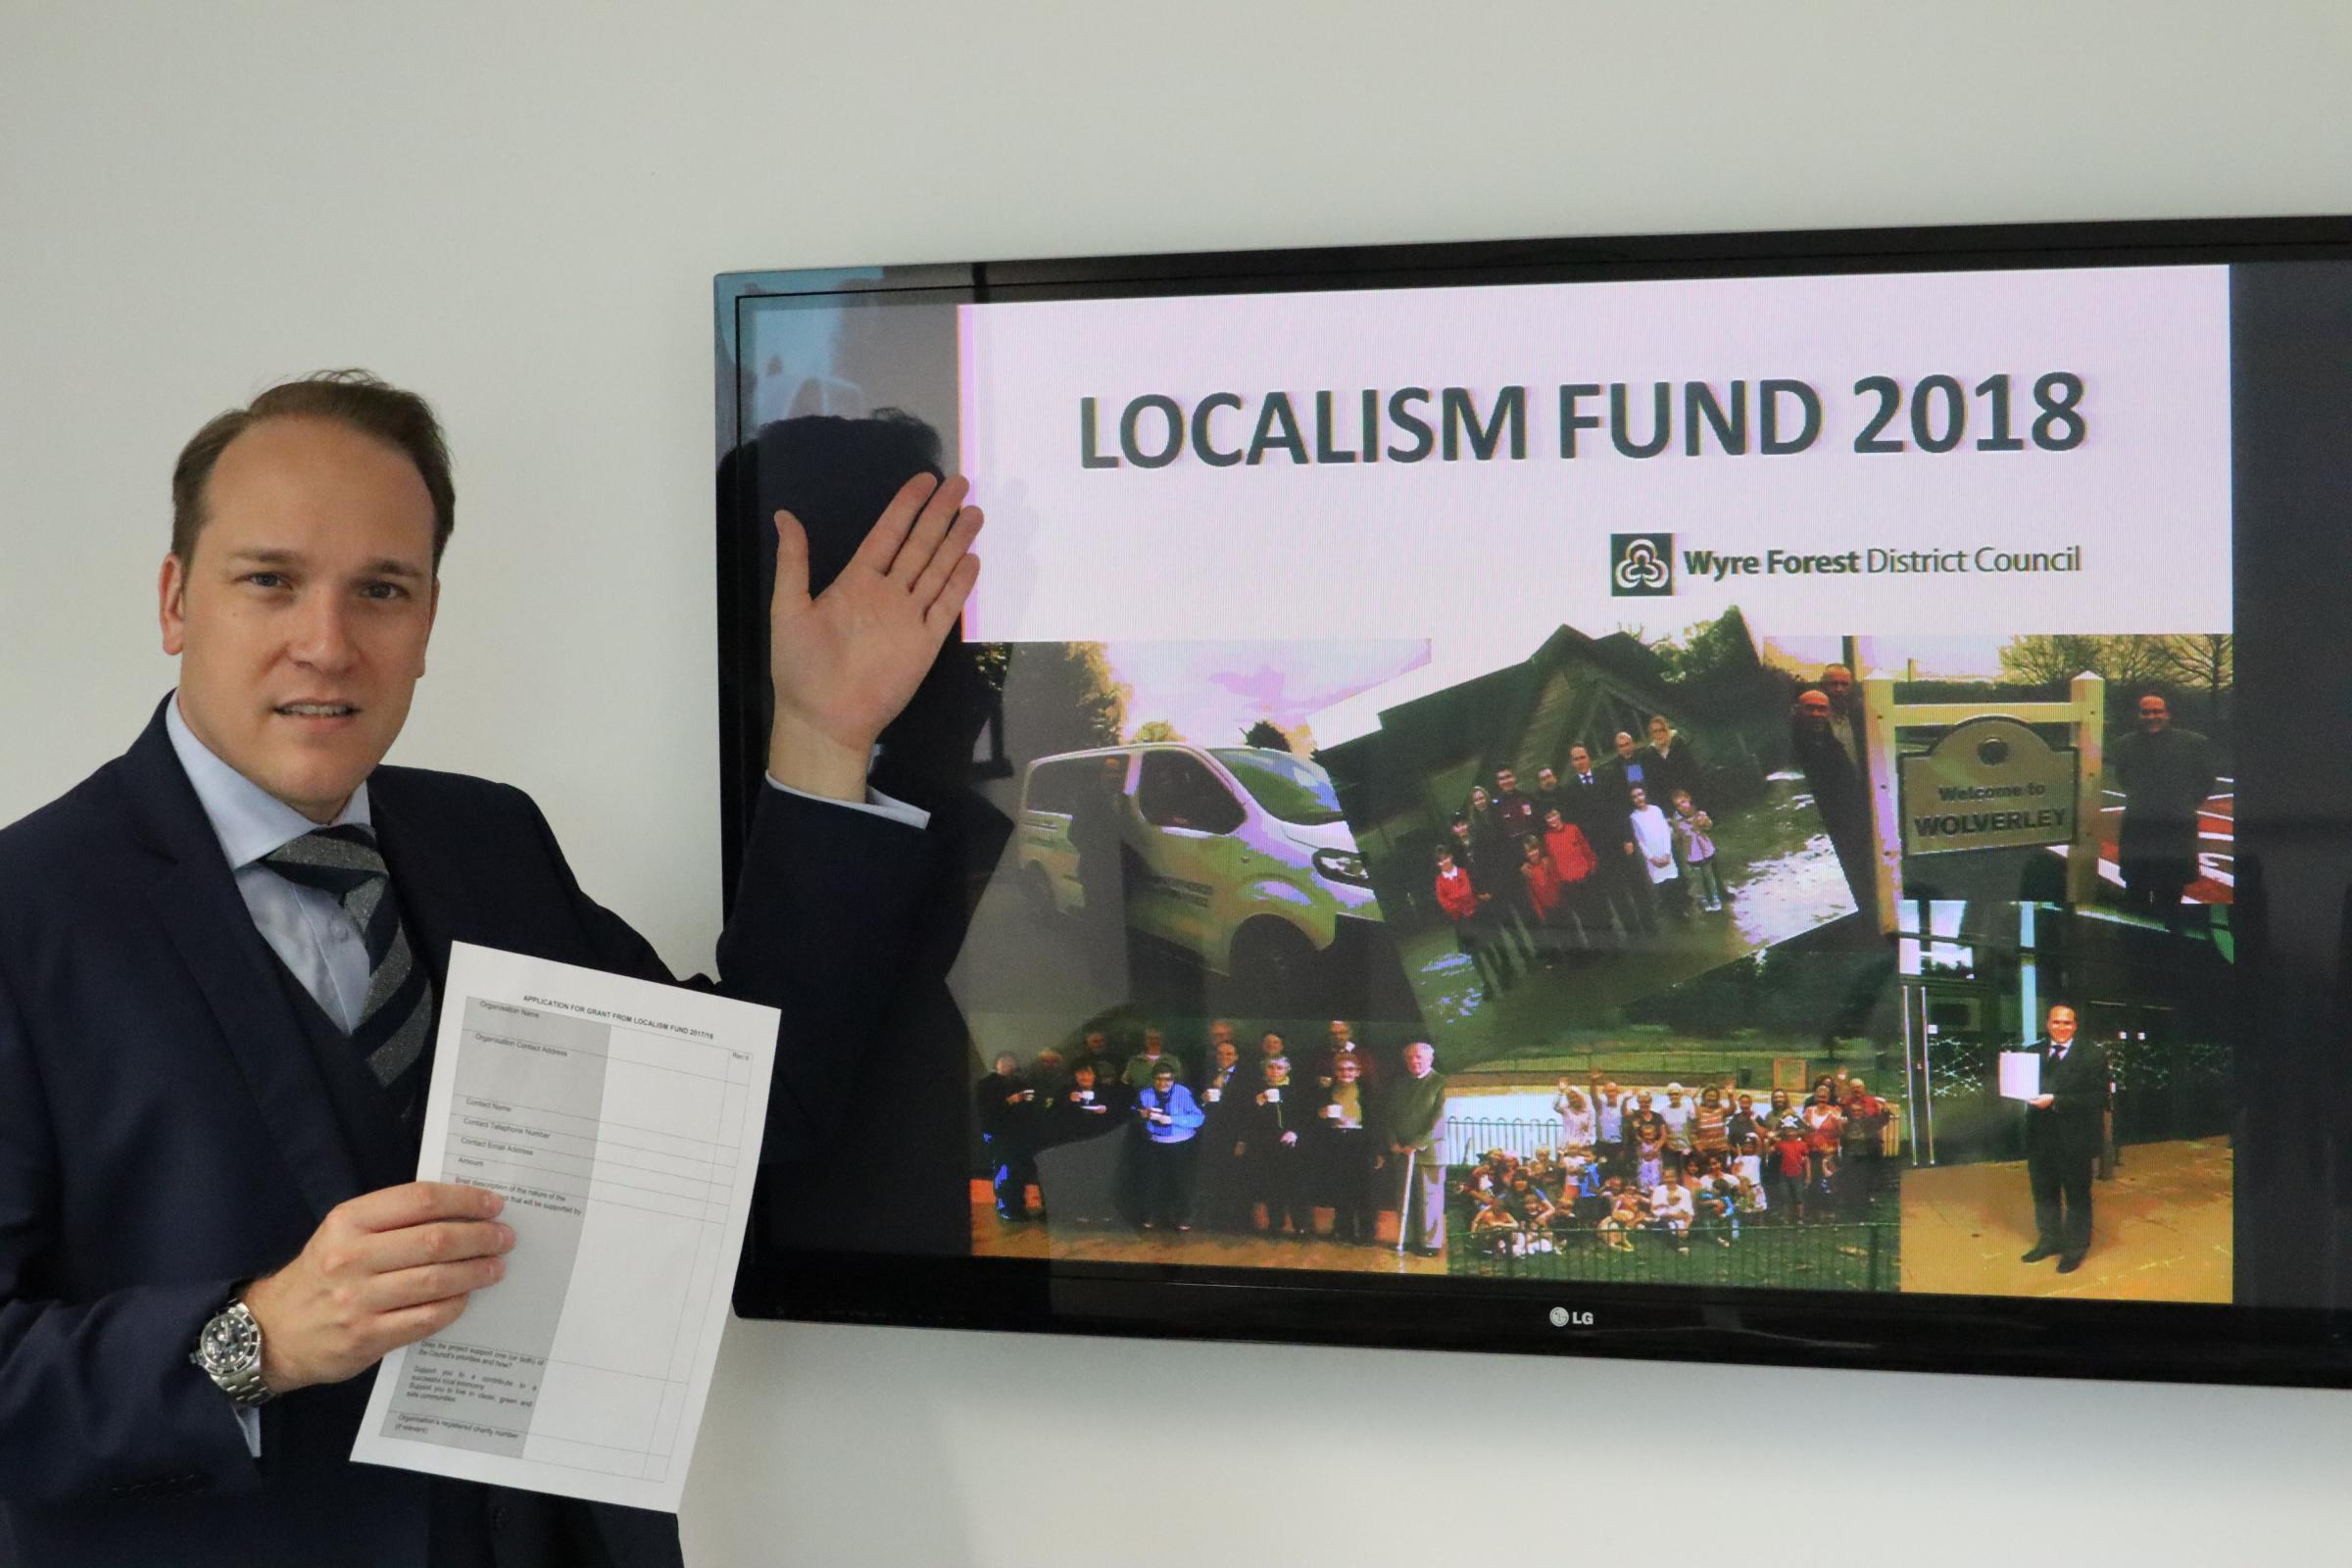 Councillor Marcus Hart launches the 2018 Localism Fund